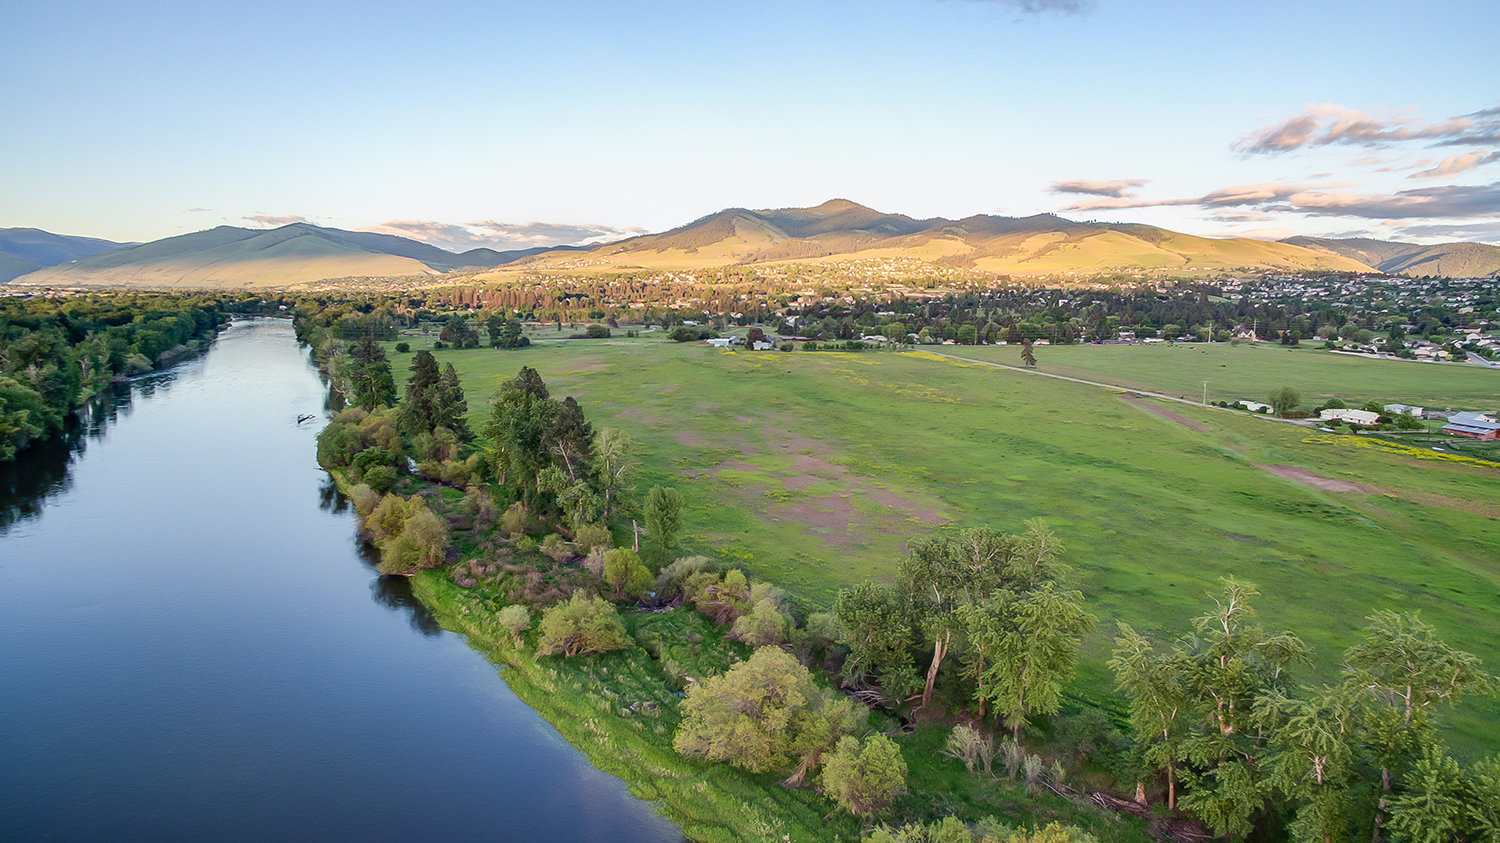 Land for Sale at 5080 Old Bitterroot Road 5080 Old Bitterroot Rd Missoula, Montana 59803 United States